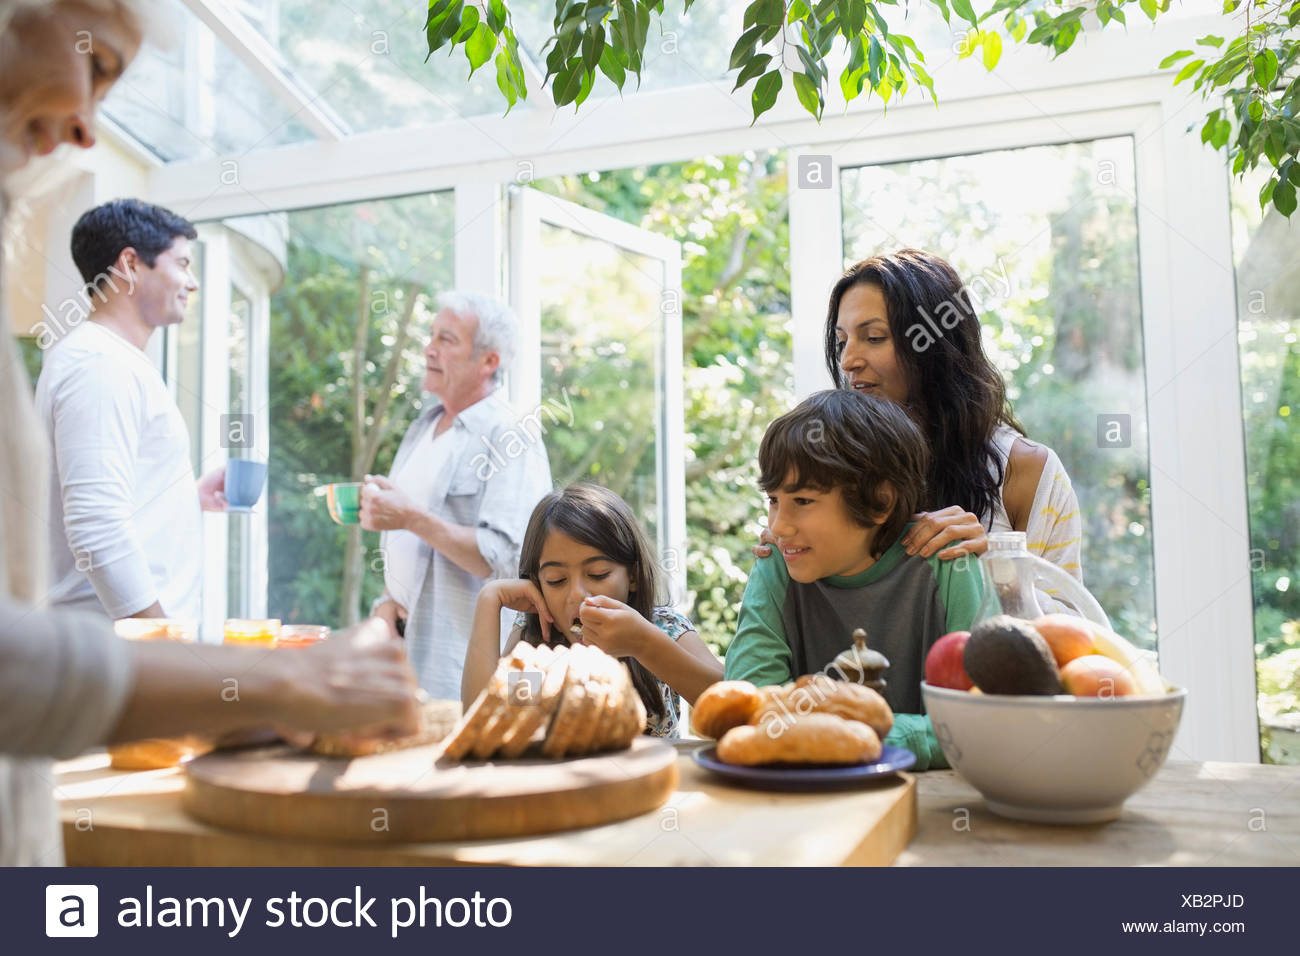 Multi-generation family eating in kitchen Stock Photo